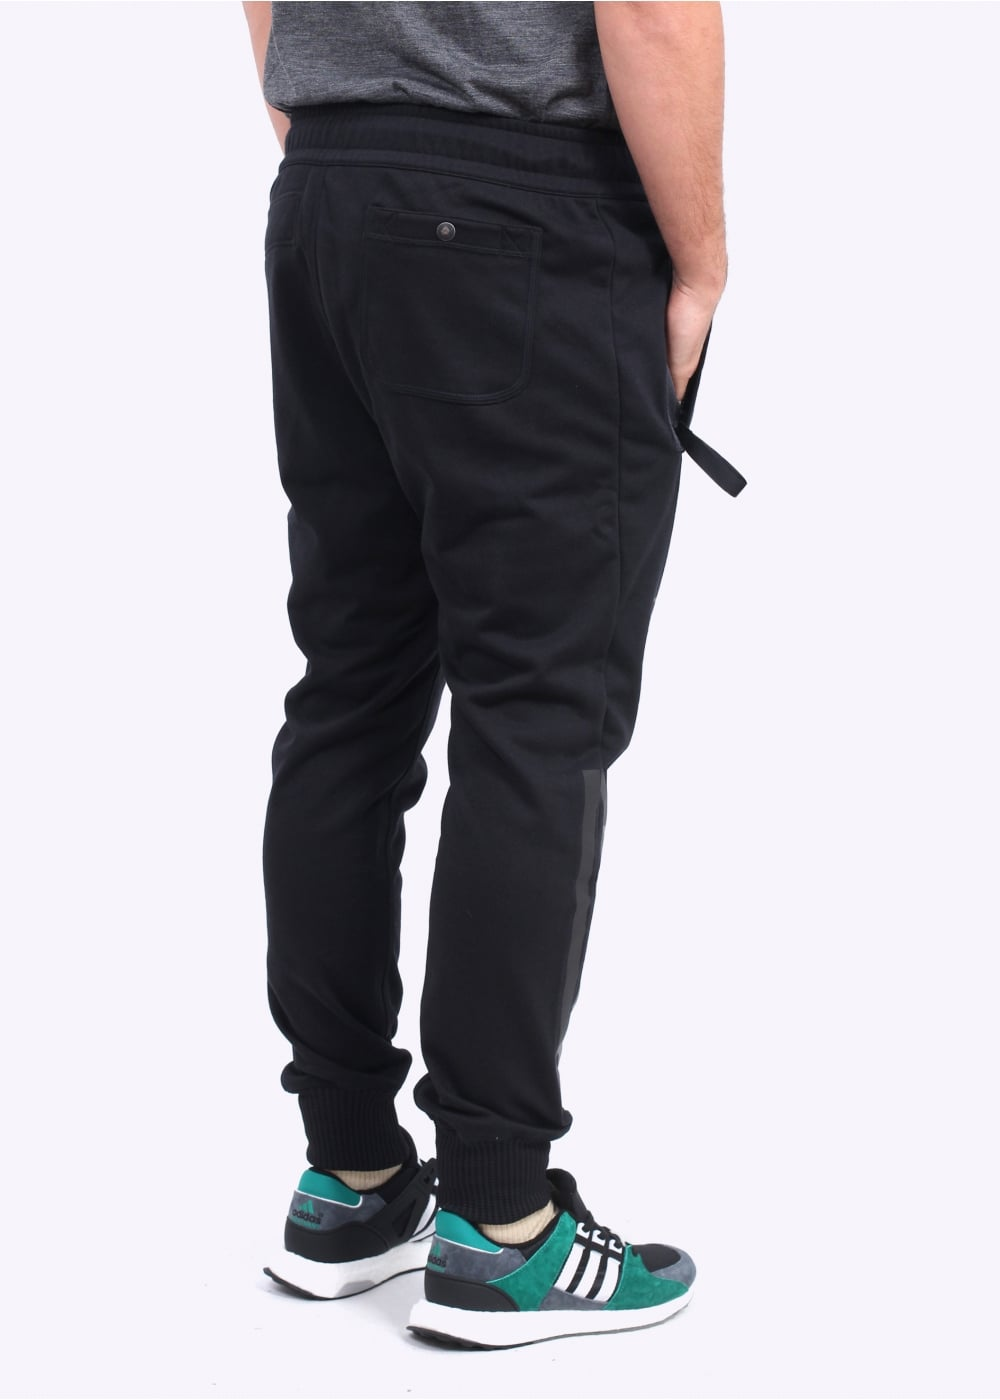 adidas originals apparel day one utility pants black. Black Bedroom Furniture Sets. Home Design Ideas